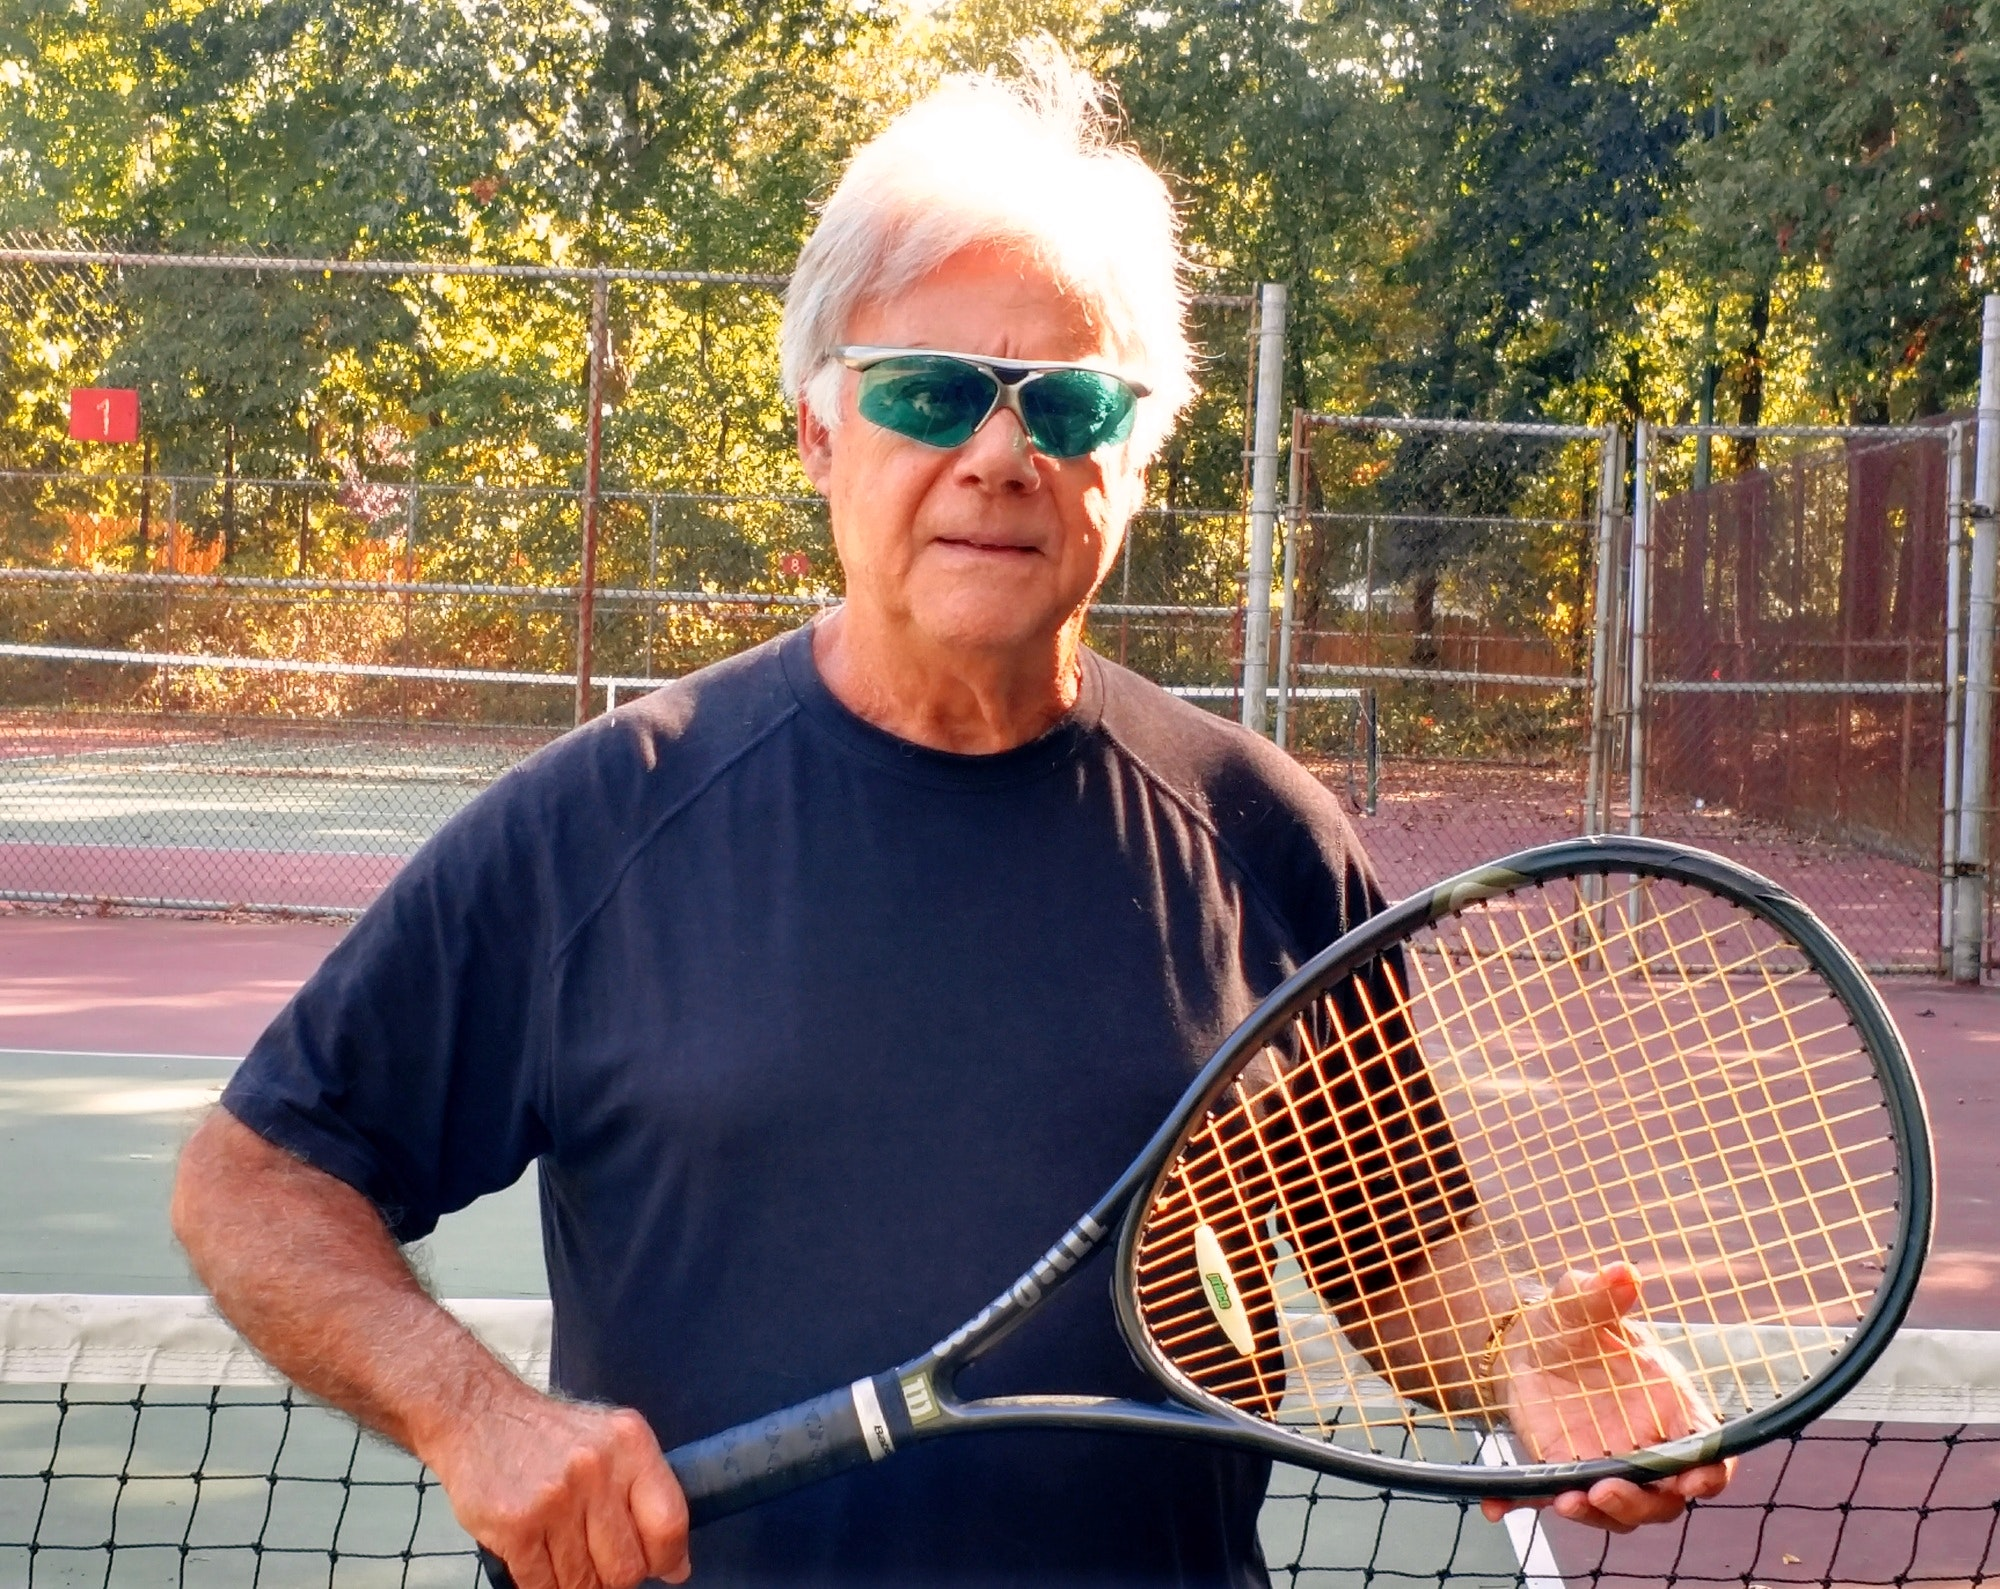 John G. teaches tennis lessons in Middletown, NJ